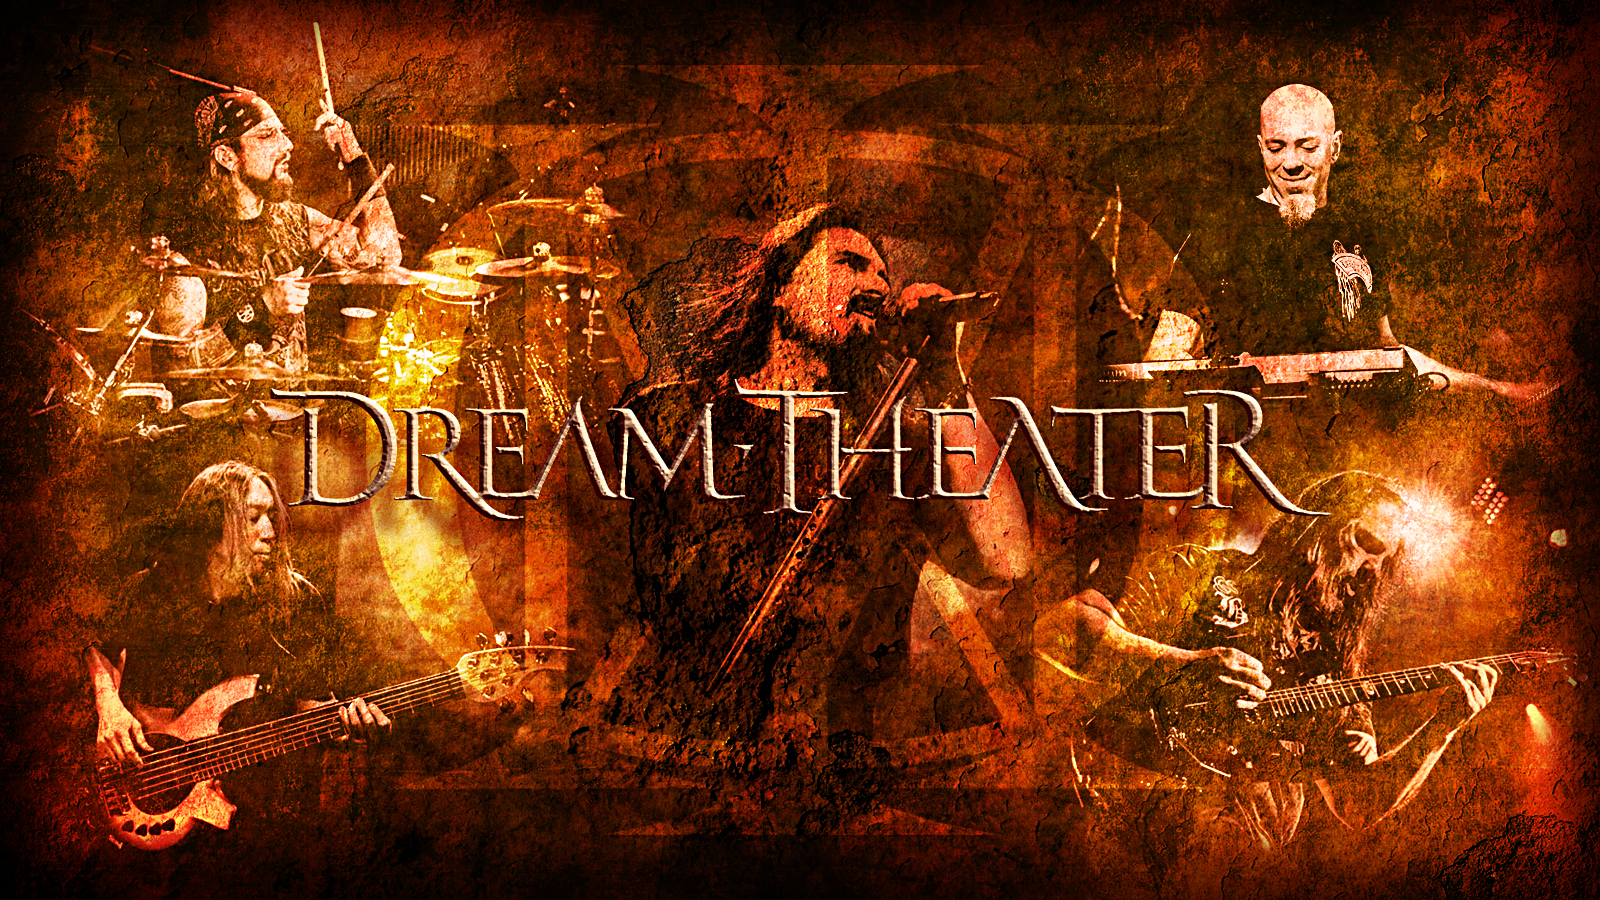 Dream Theater Computer Wallpapers Desktop Backgrounds 1600x900 ID 1600x900